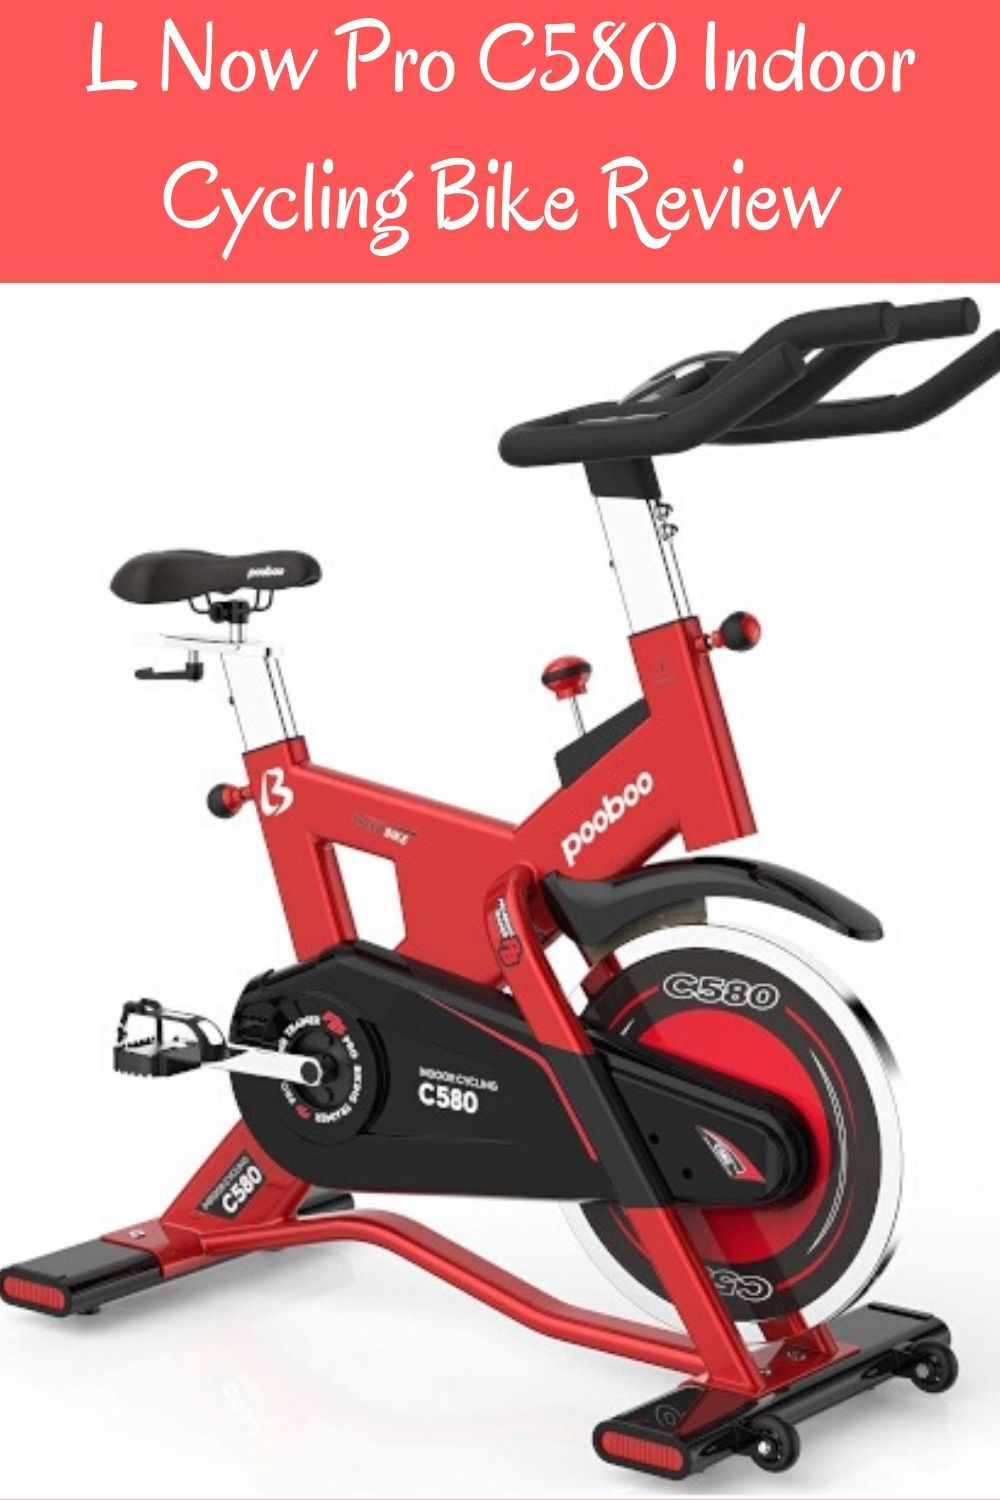 L Now Pro C580 Indoor Cycling Bike Review In 2020 Indoor Cycling Bike Bike Reviews Cycling